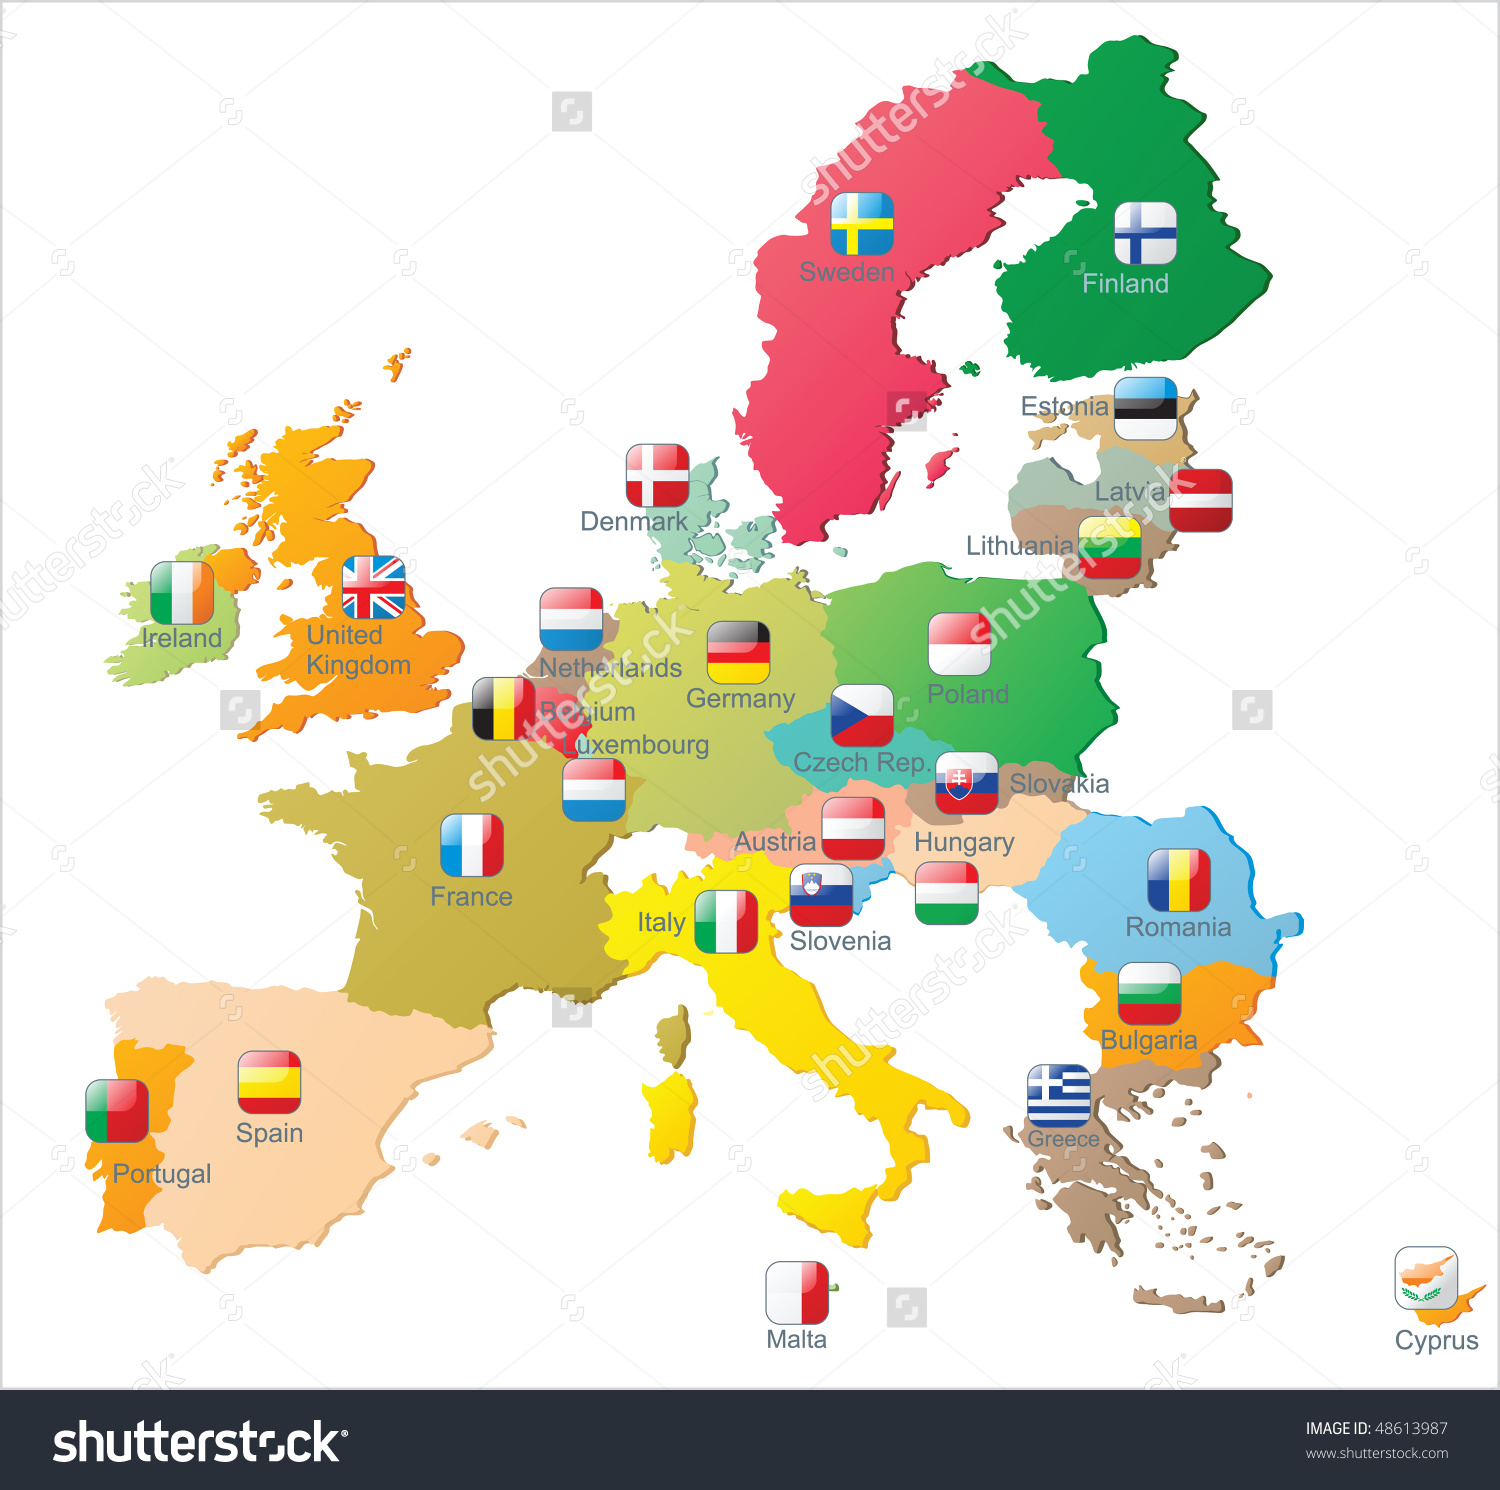 stock-vector-the-european-union-map-with-flags-48613987.jpg